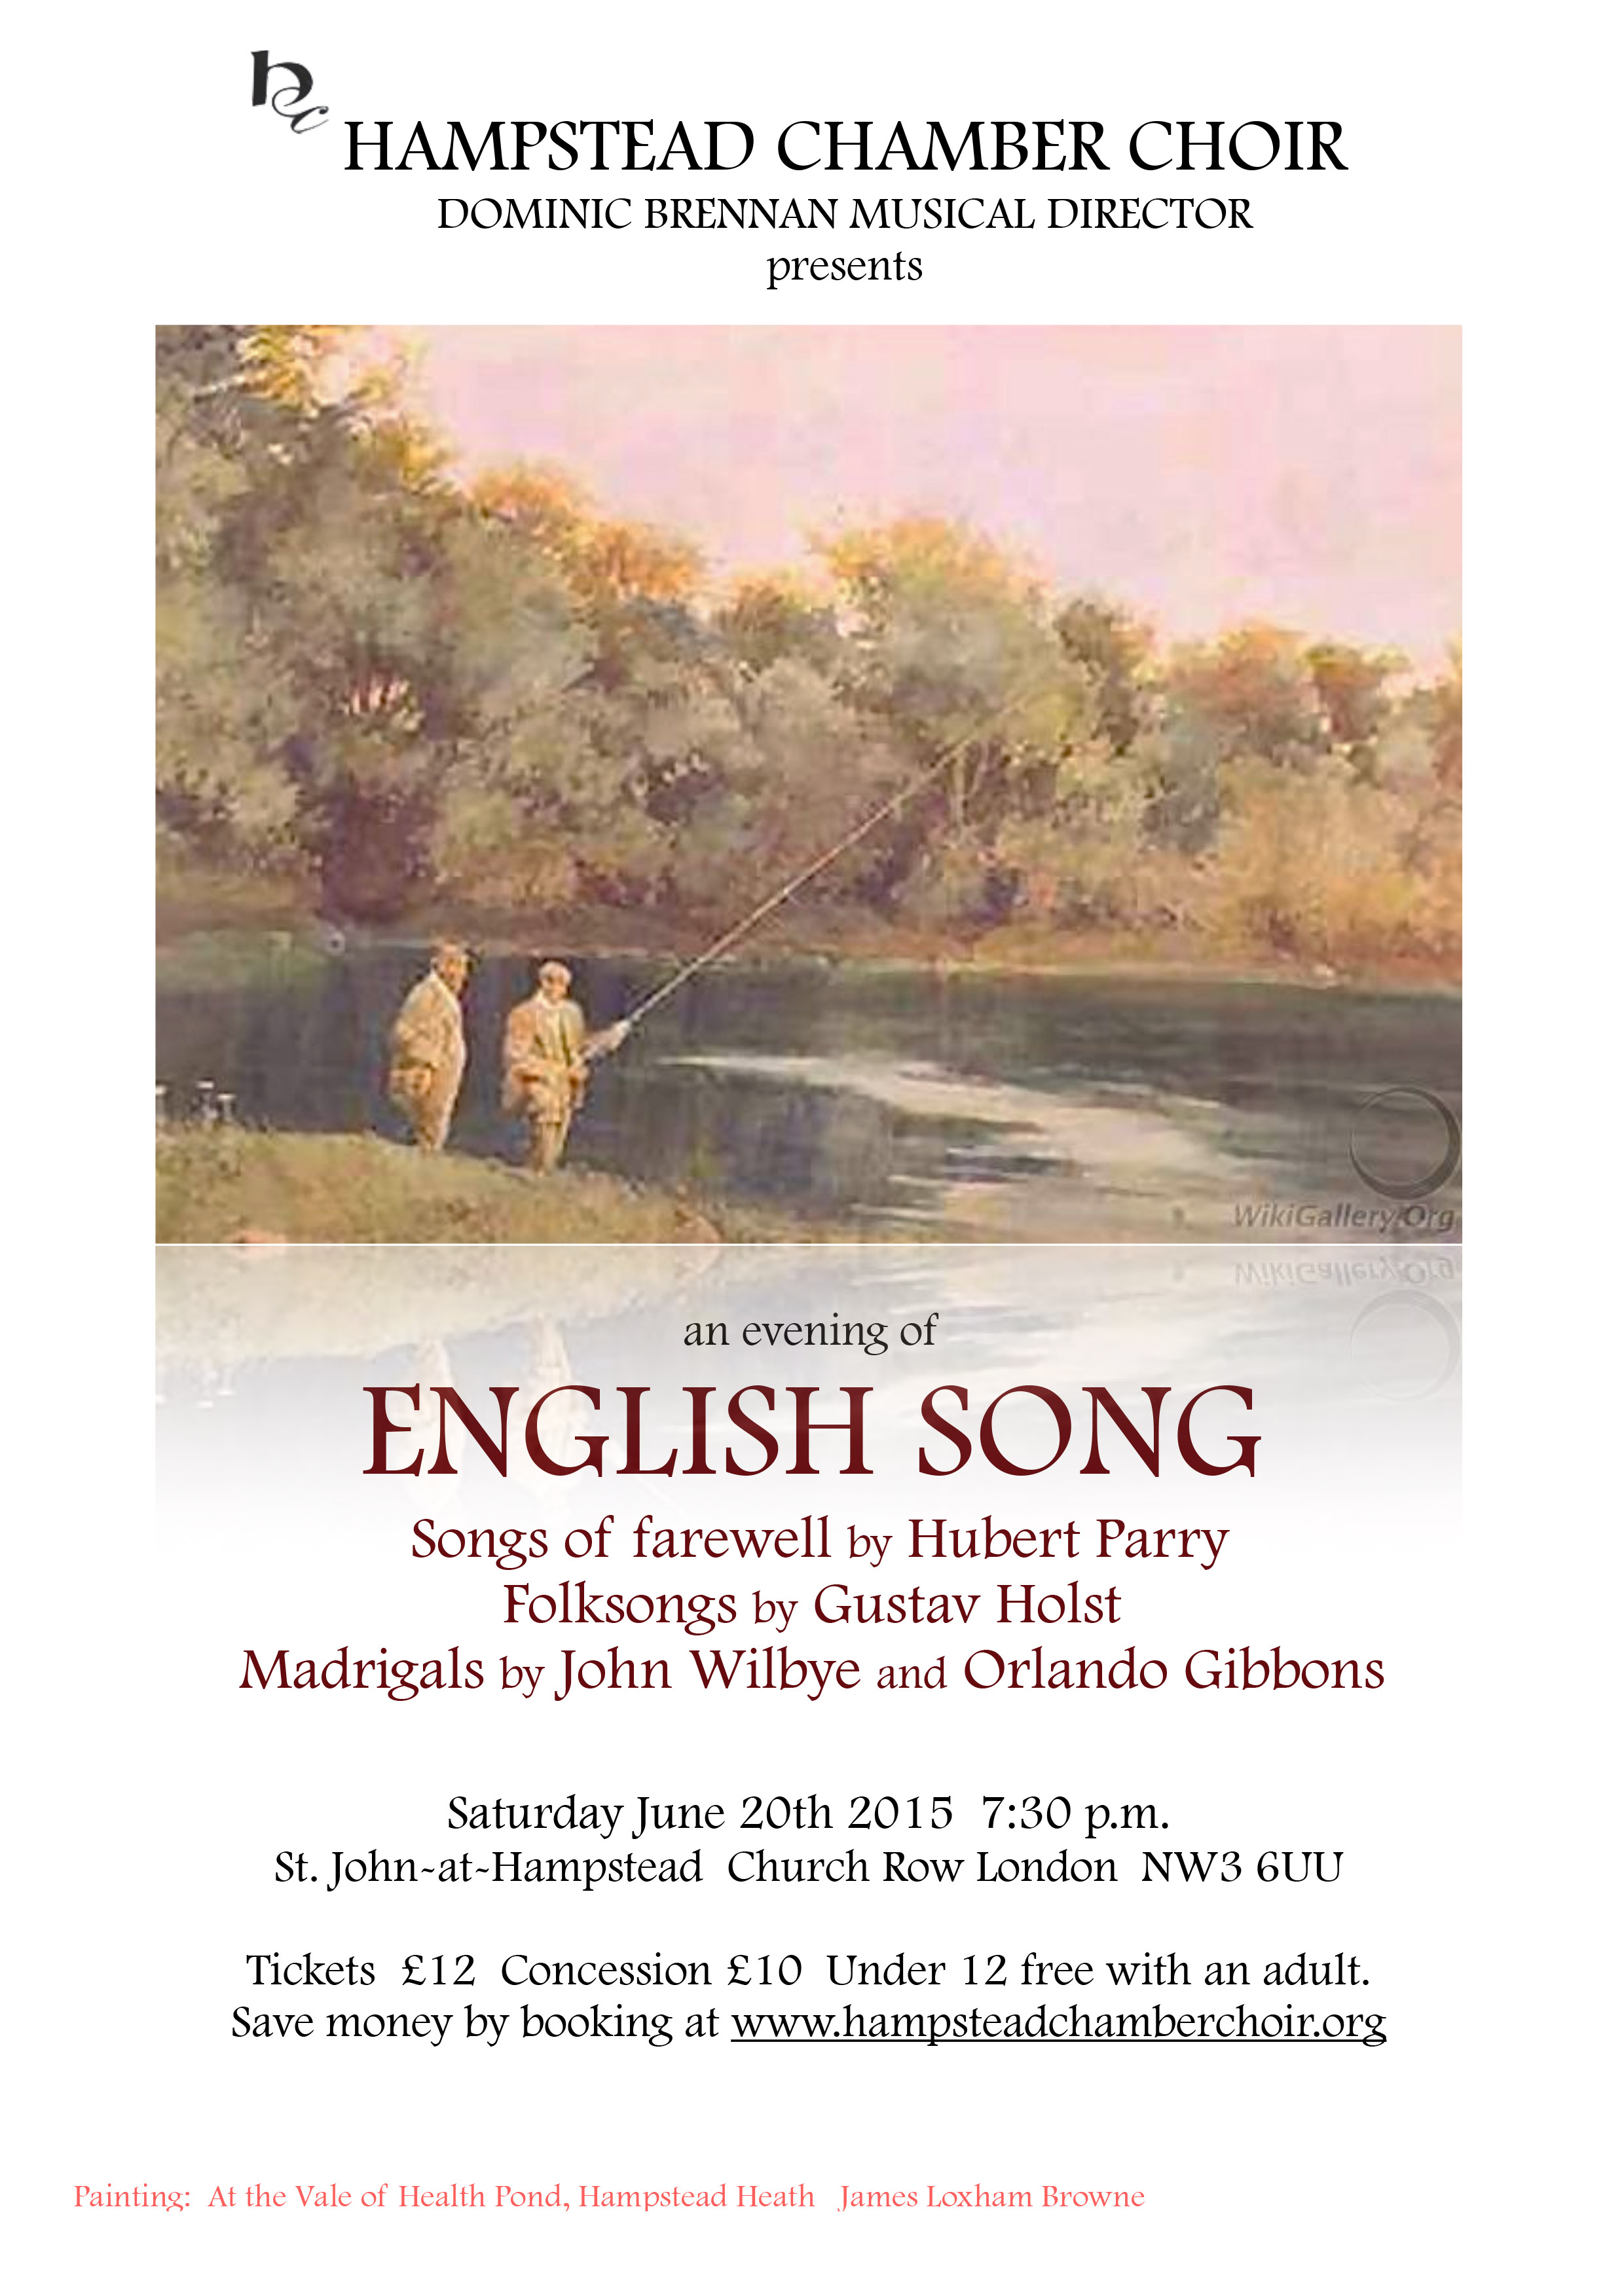 English Song concert poster